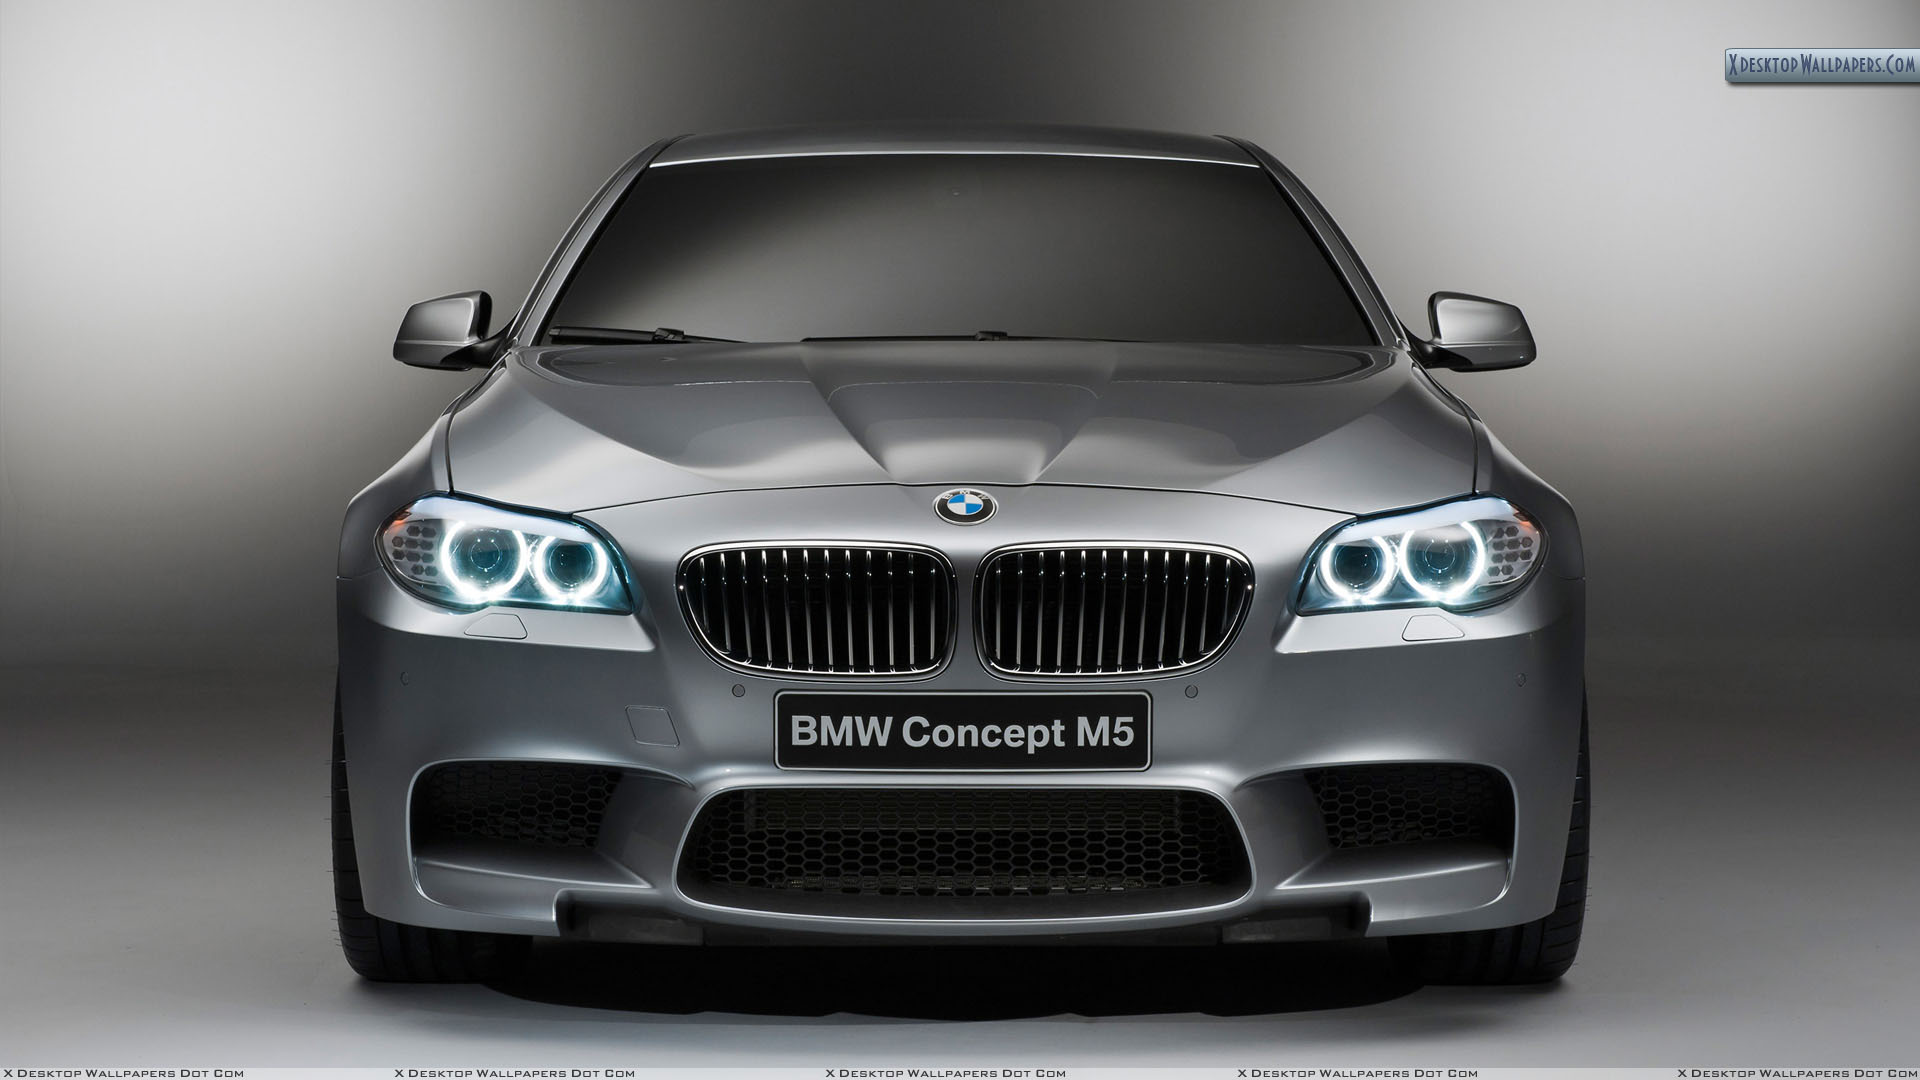 Front Closeup Picture of 2012 BMW M5 Concept 1920x1080